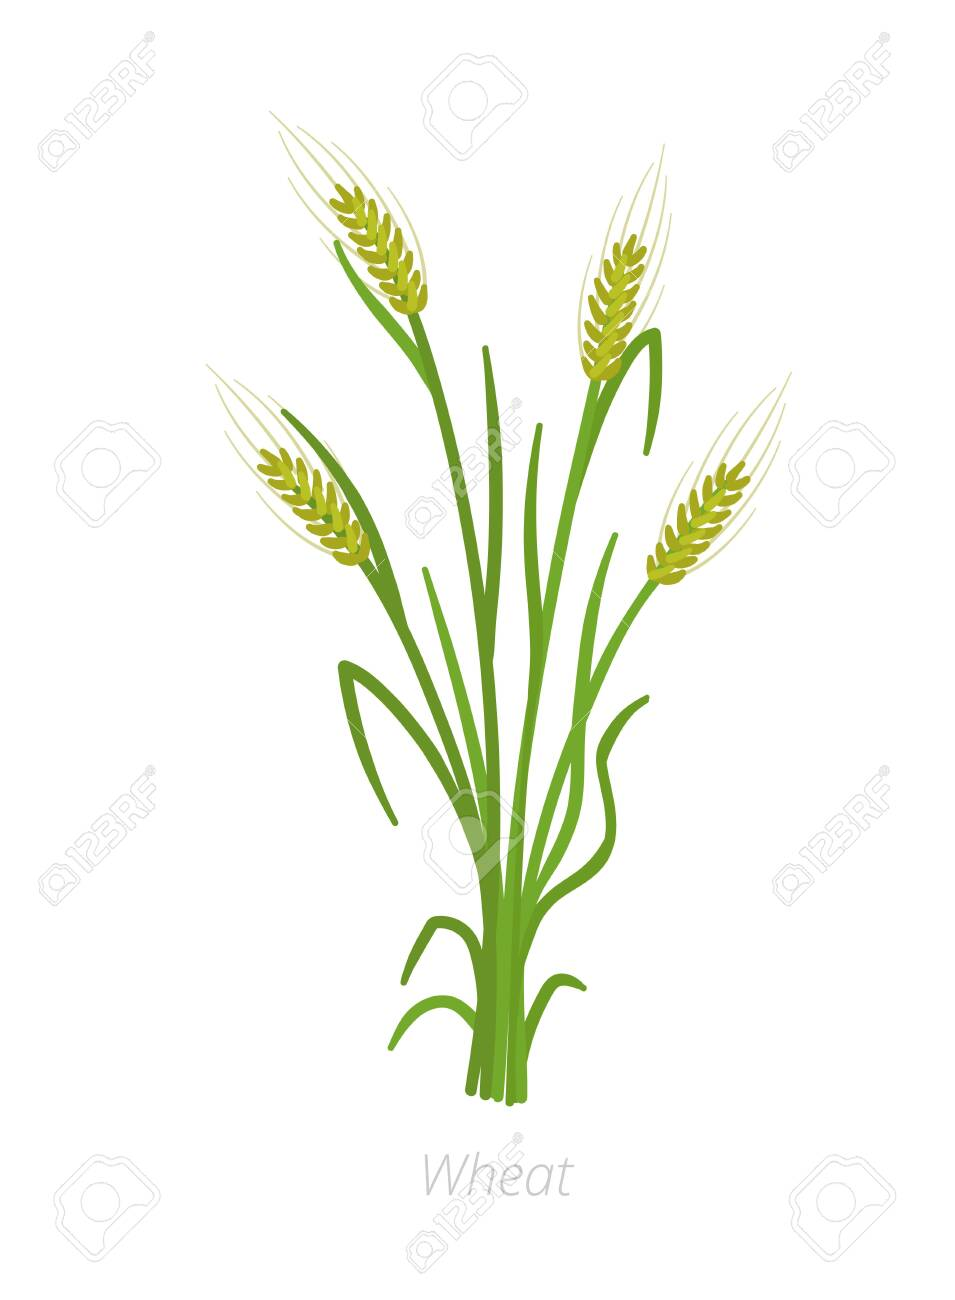 Rye, barley or wheat plant. Vector illustration. Secale cereale.